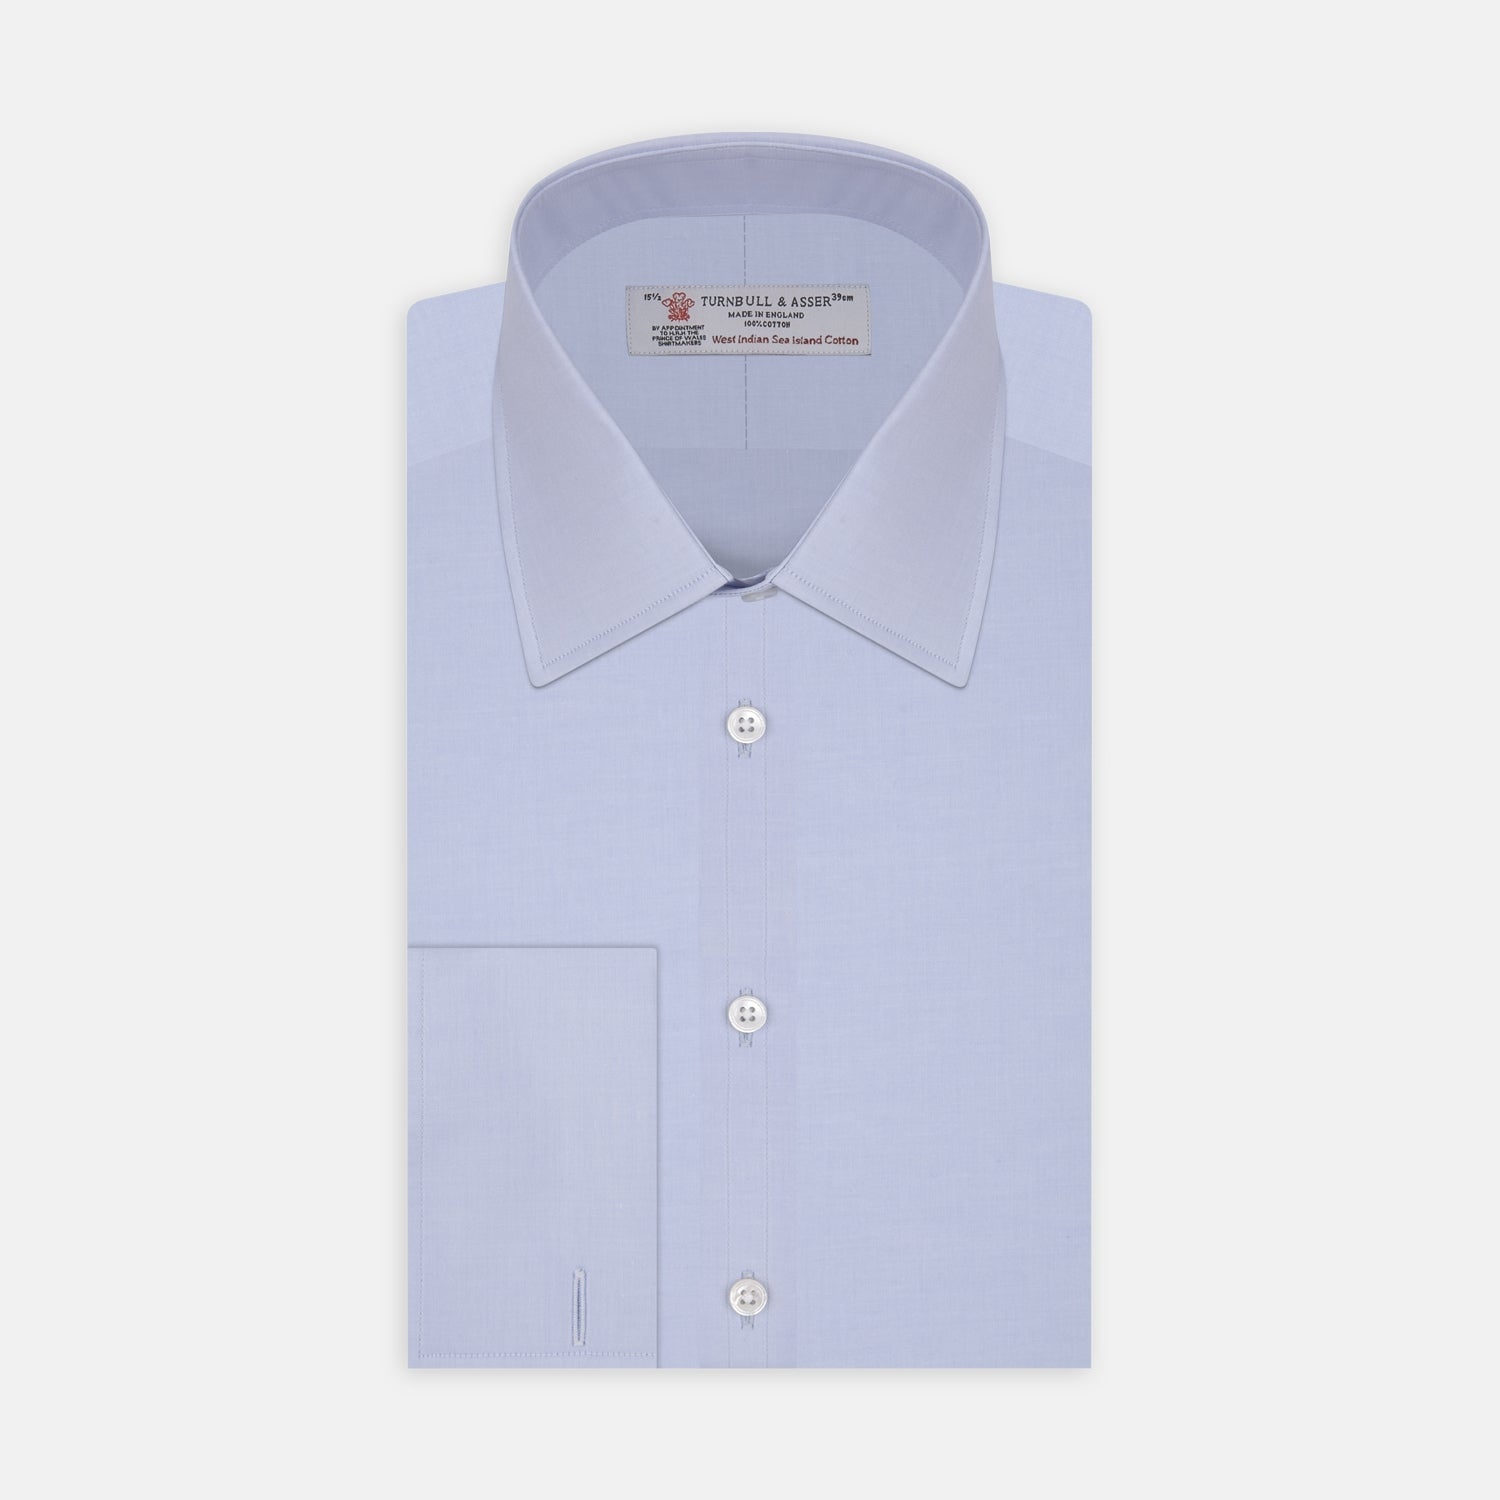 Blue West Indian Sea Island Cotton Shirt with T&A Collar and Double Cuffs